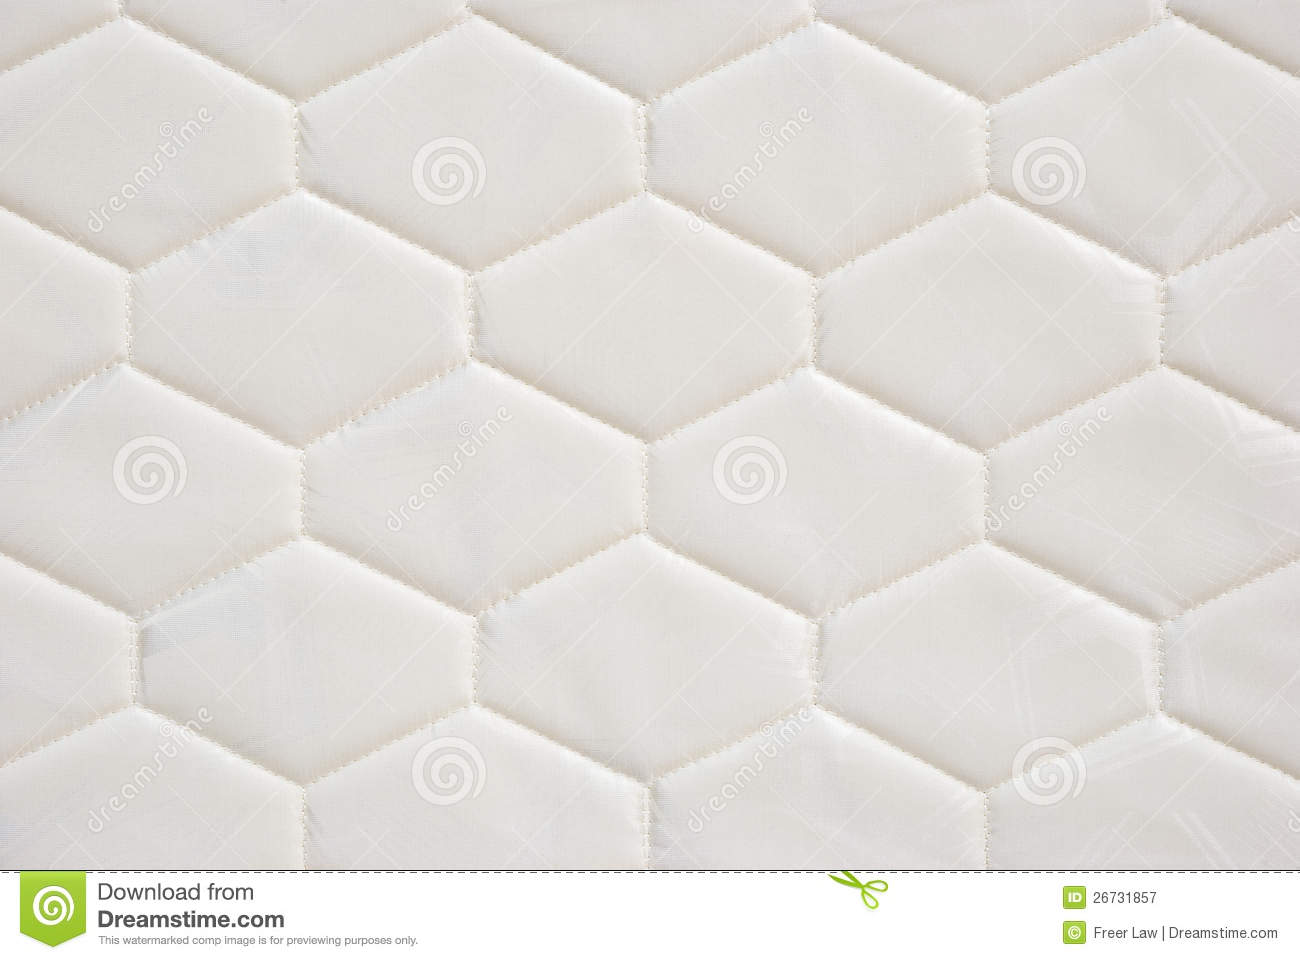 Mattress pattern stock image Image of rest cushioned